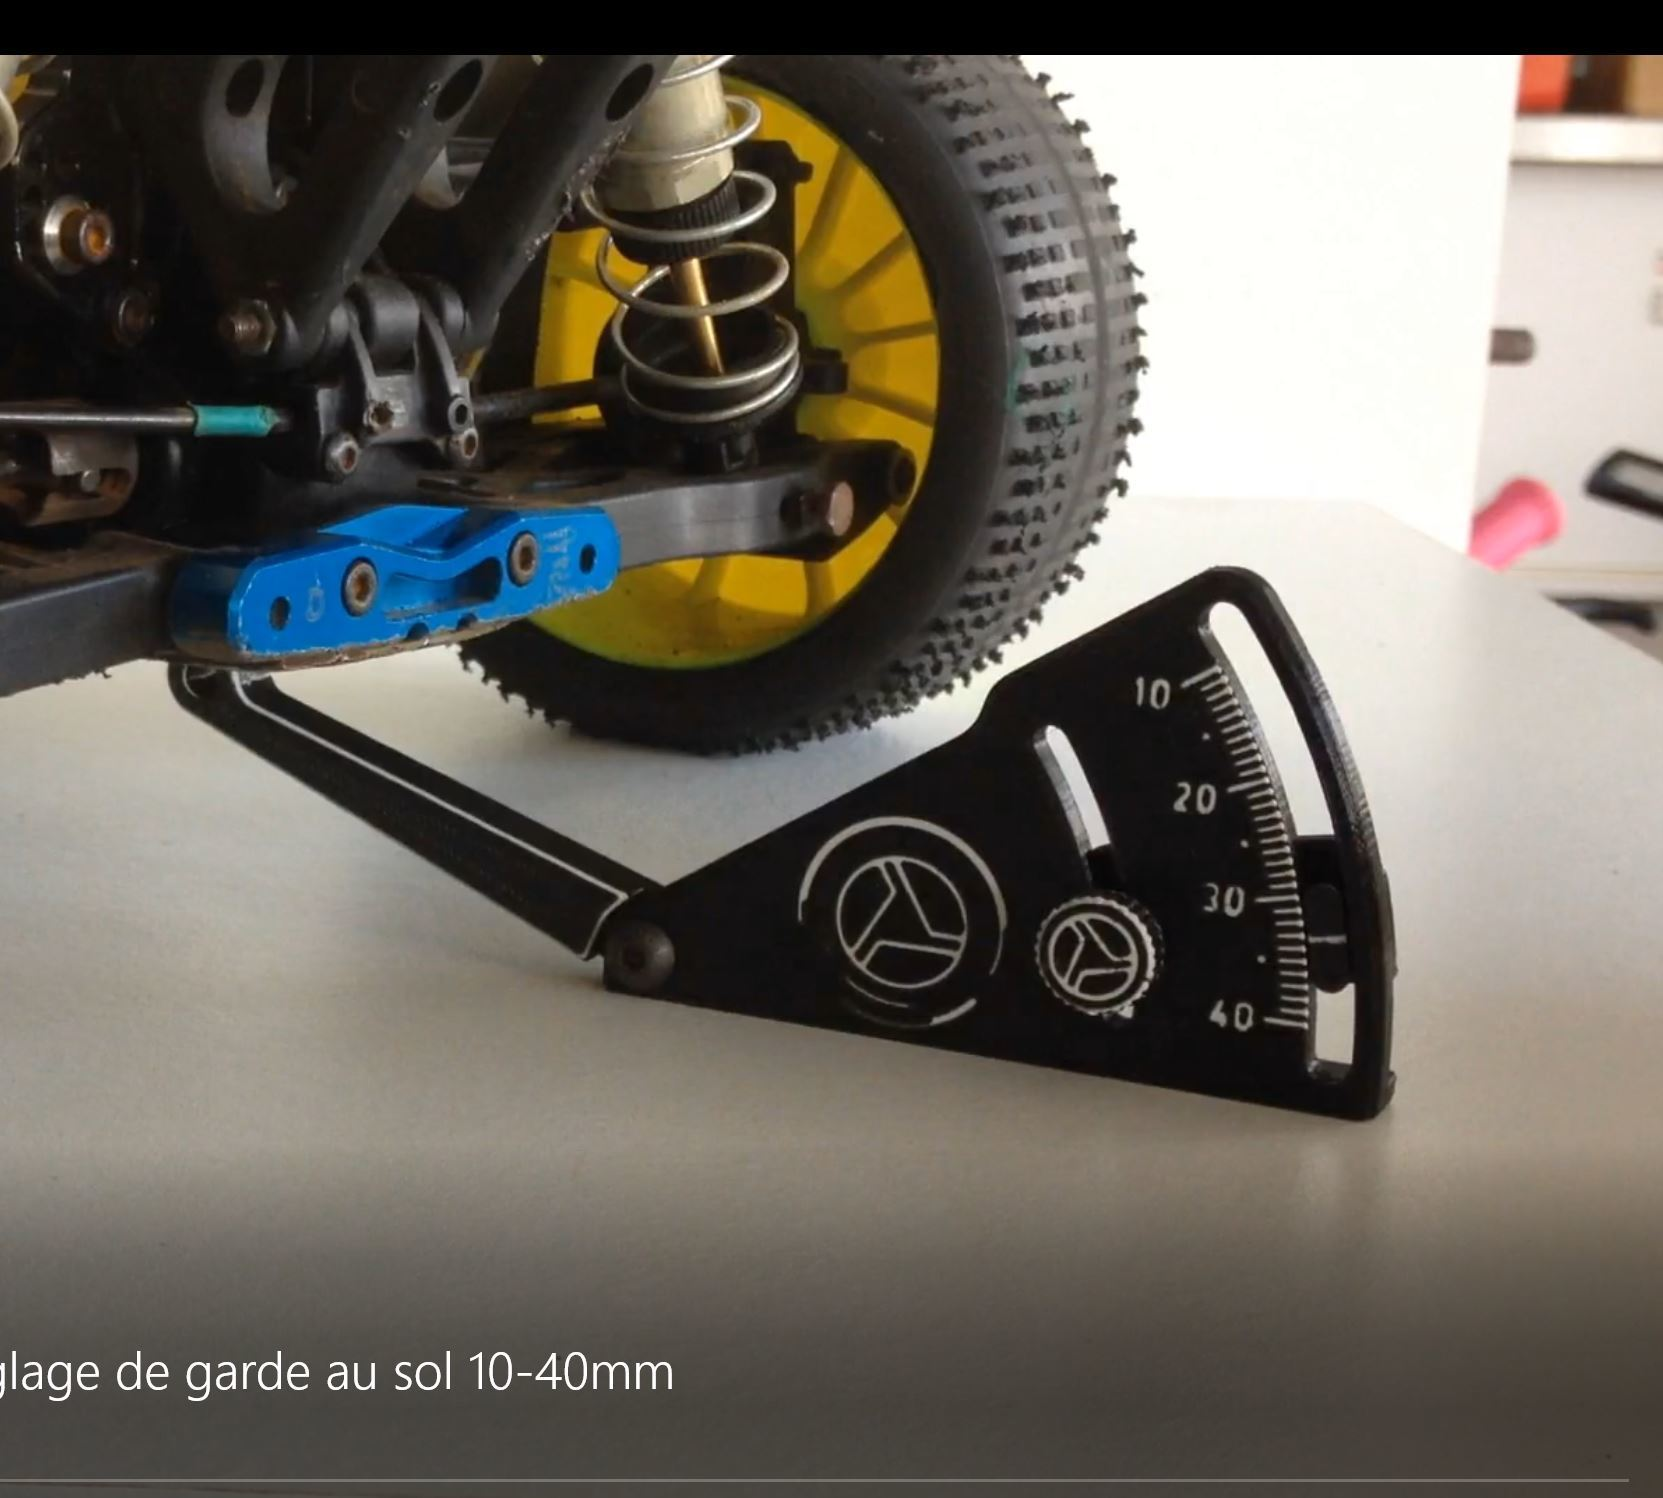 4.JPG Download STL file Modelism RC: ground clearance adjustment gauge 10-40mm • Template to 3D print, woody3d974